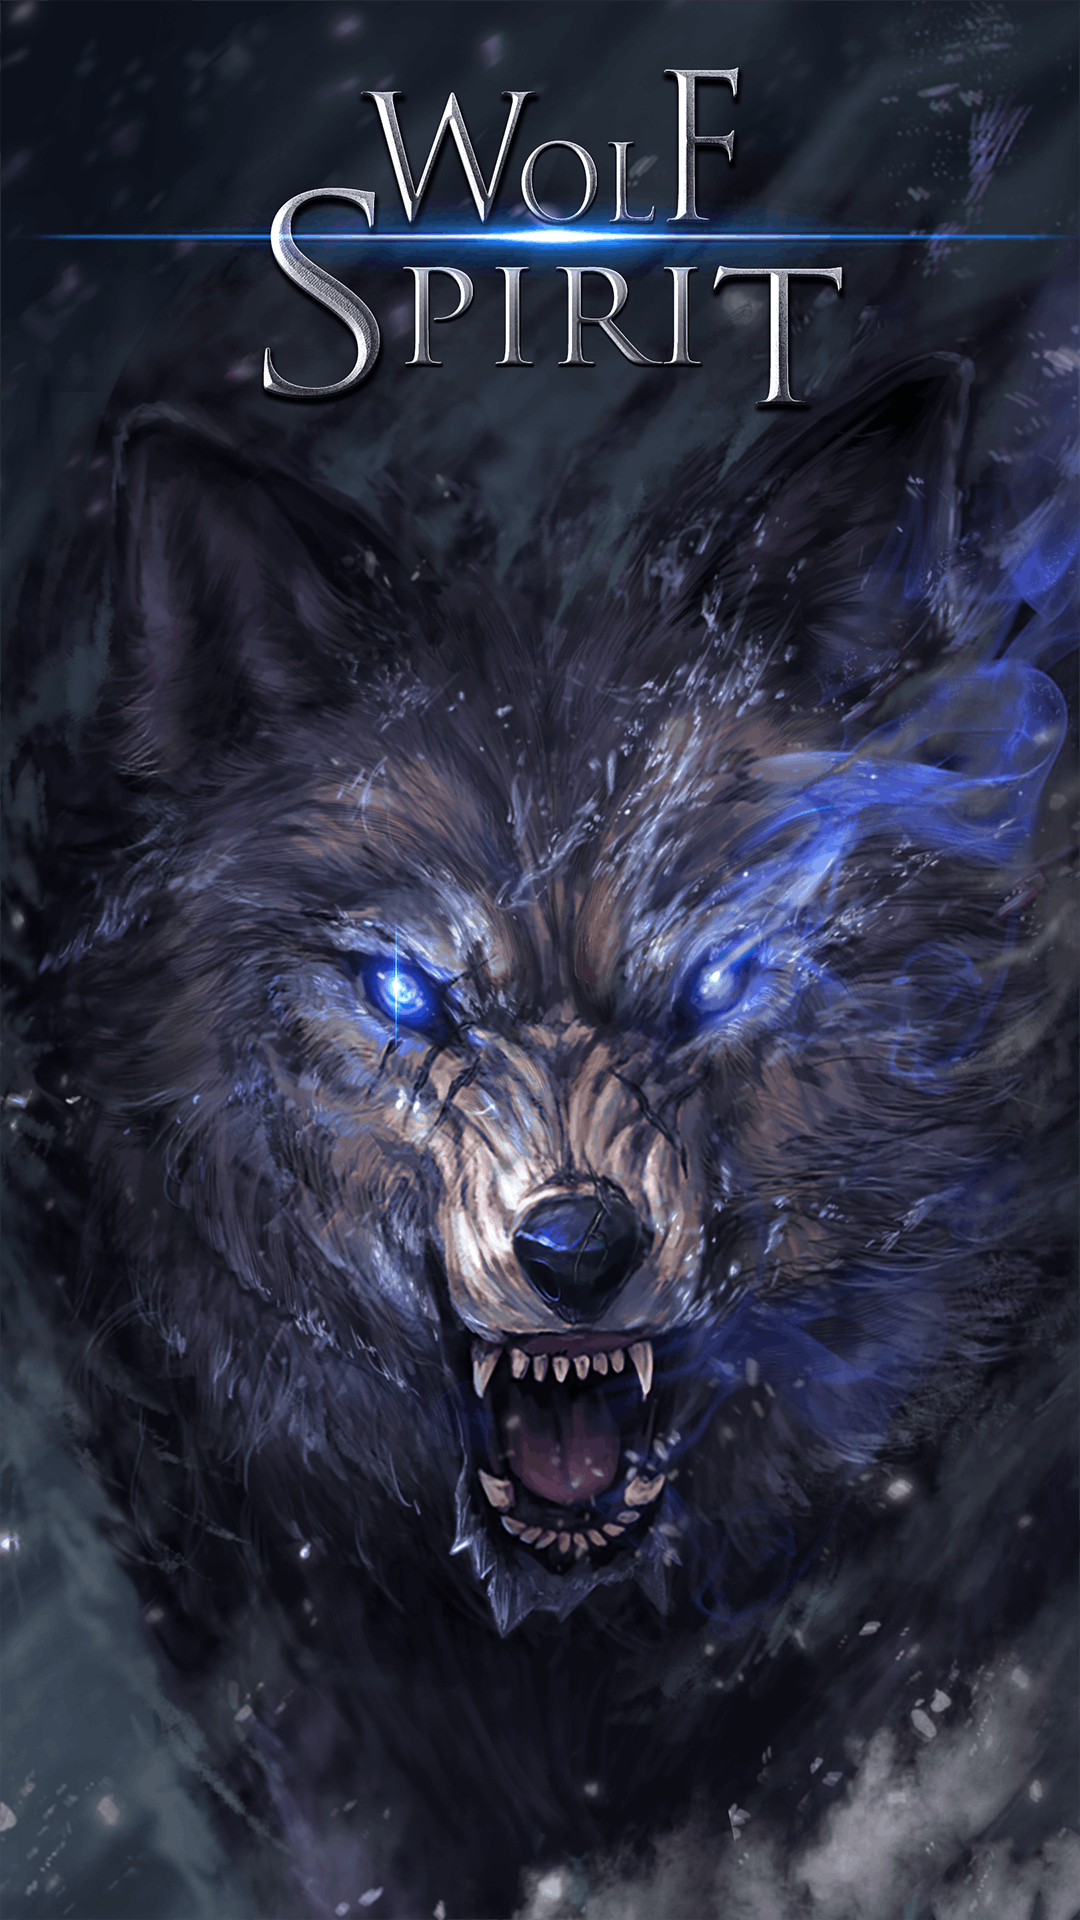 3d Wallpaper Cm Launcher Wolf Spirit Live Wallpaper Android Live Wallpapers From